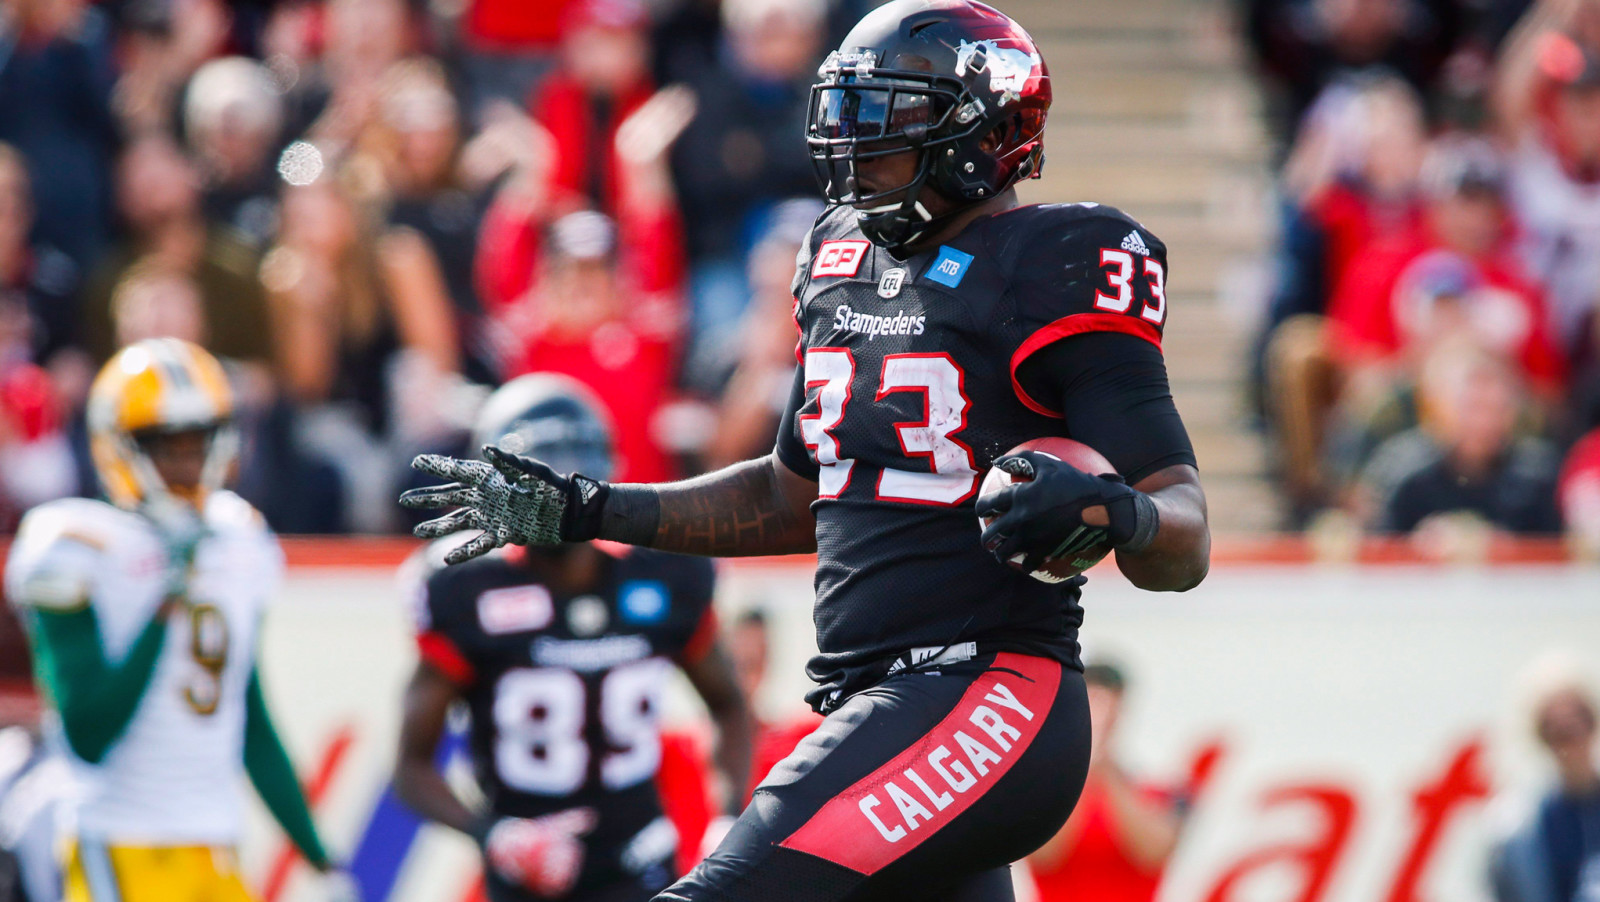 competitive price 2544a 40c0f Stampeders to wear modified version of alternate jersey - CFL.ca